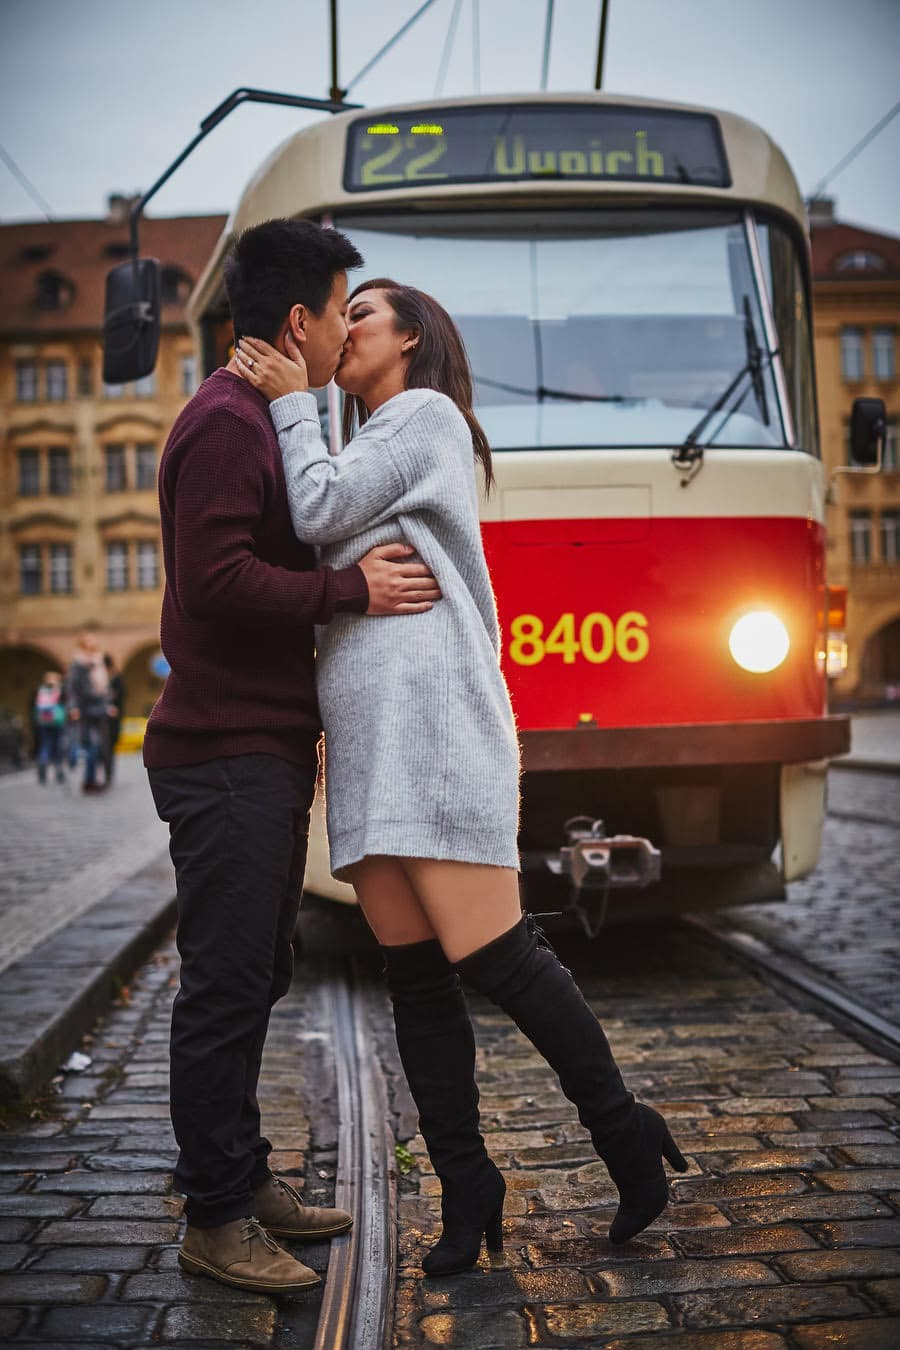 Prague, stylish young couple kissing in front of tram with lights on